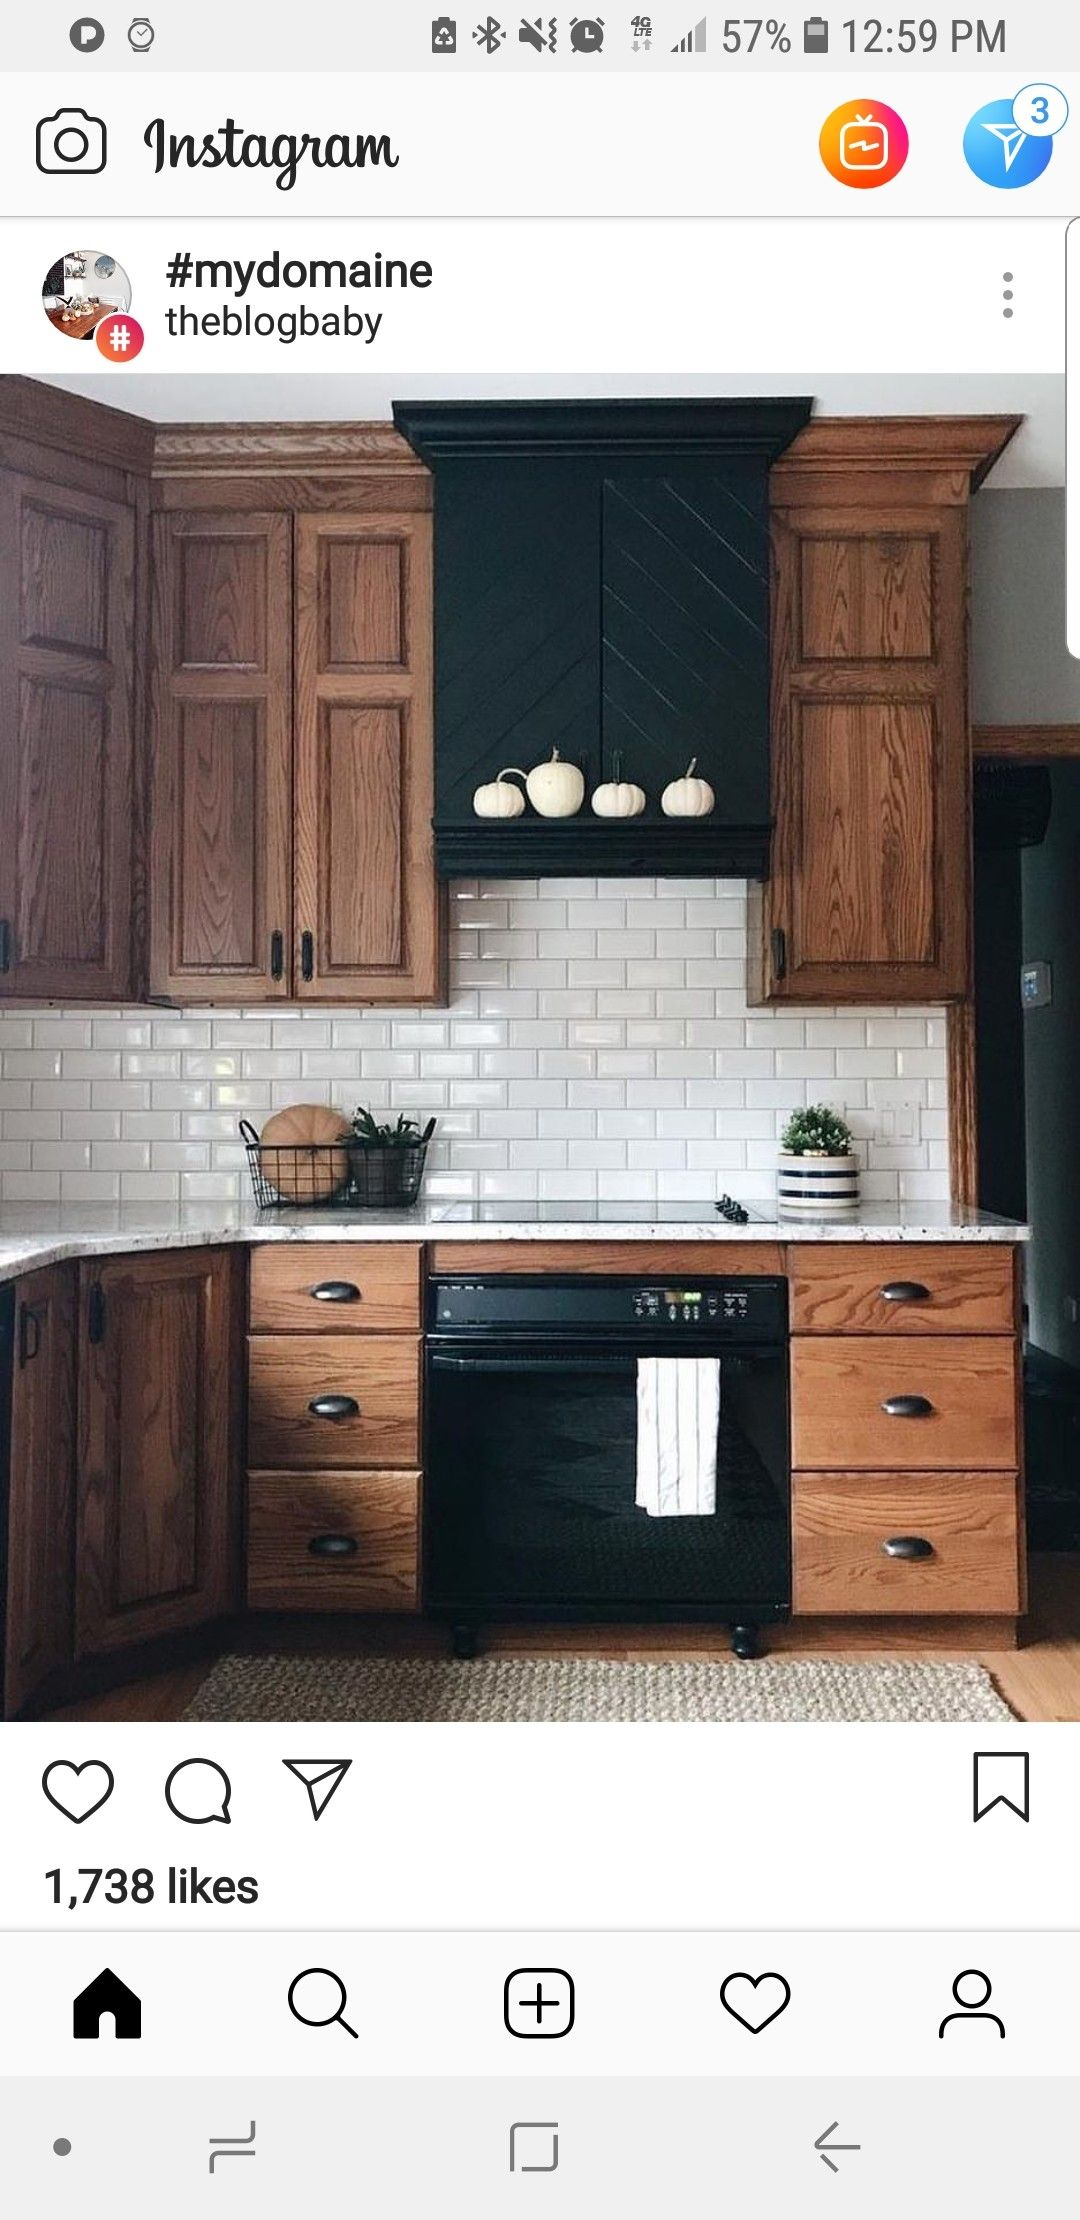 Mid Tone Oak Cabinets In Kitchen Black Hardware And White Tile To Modernize An Otherwise Very Traditio Kitchen Renovation Kitchen Design Custom Kitchen Island